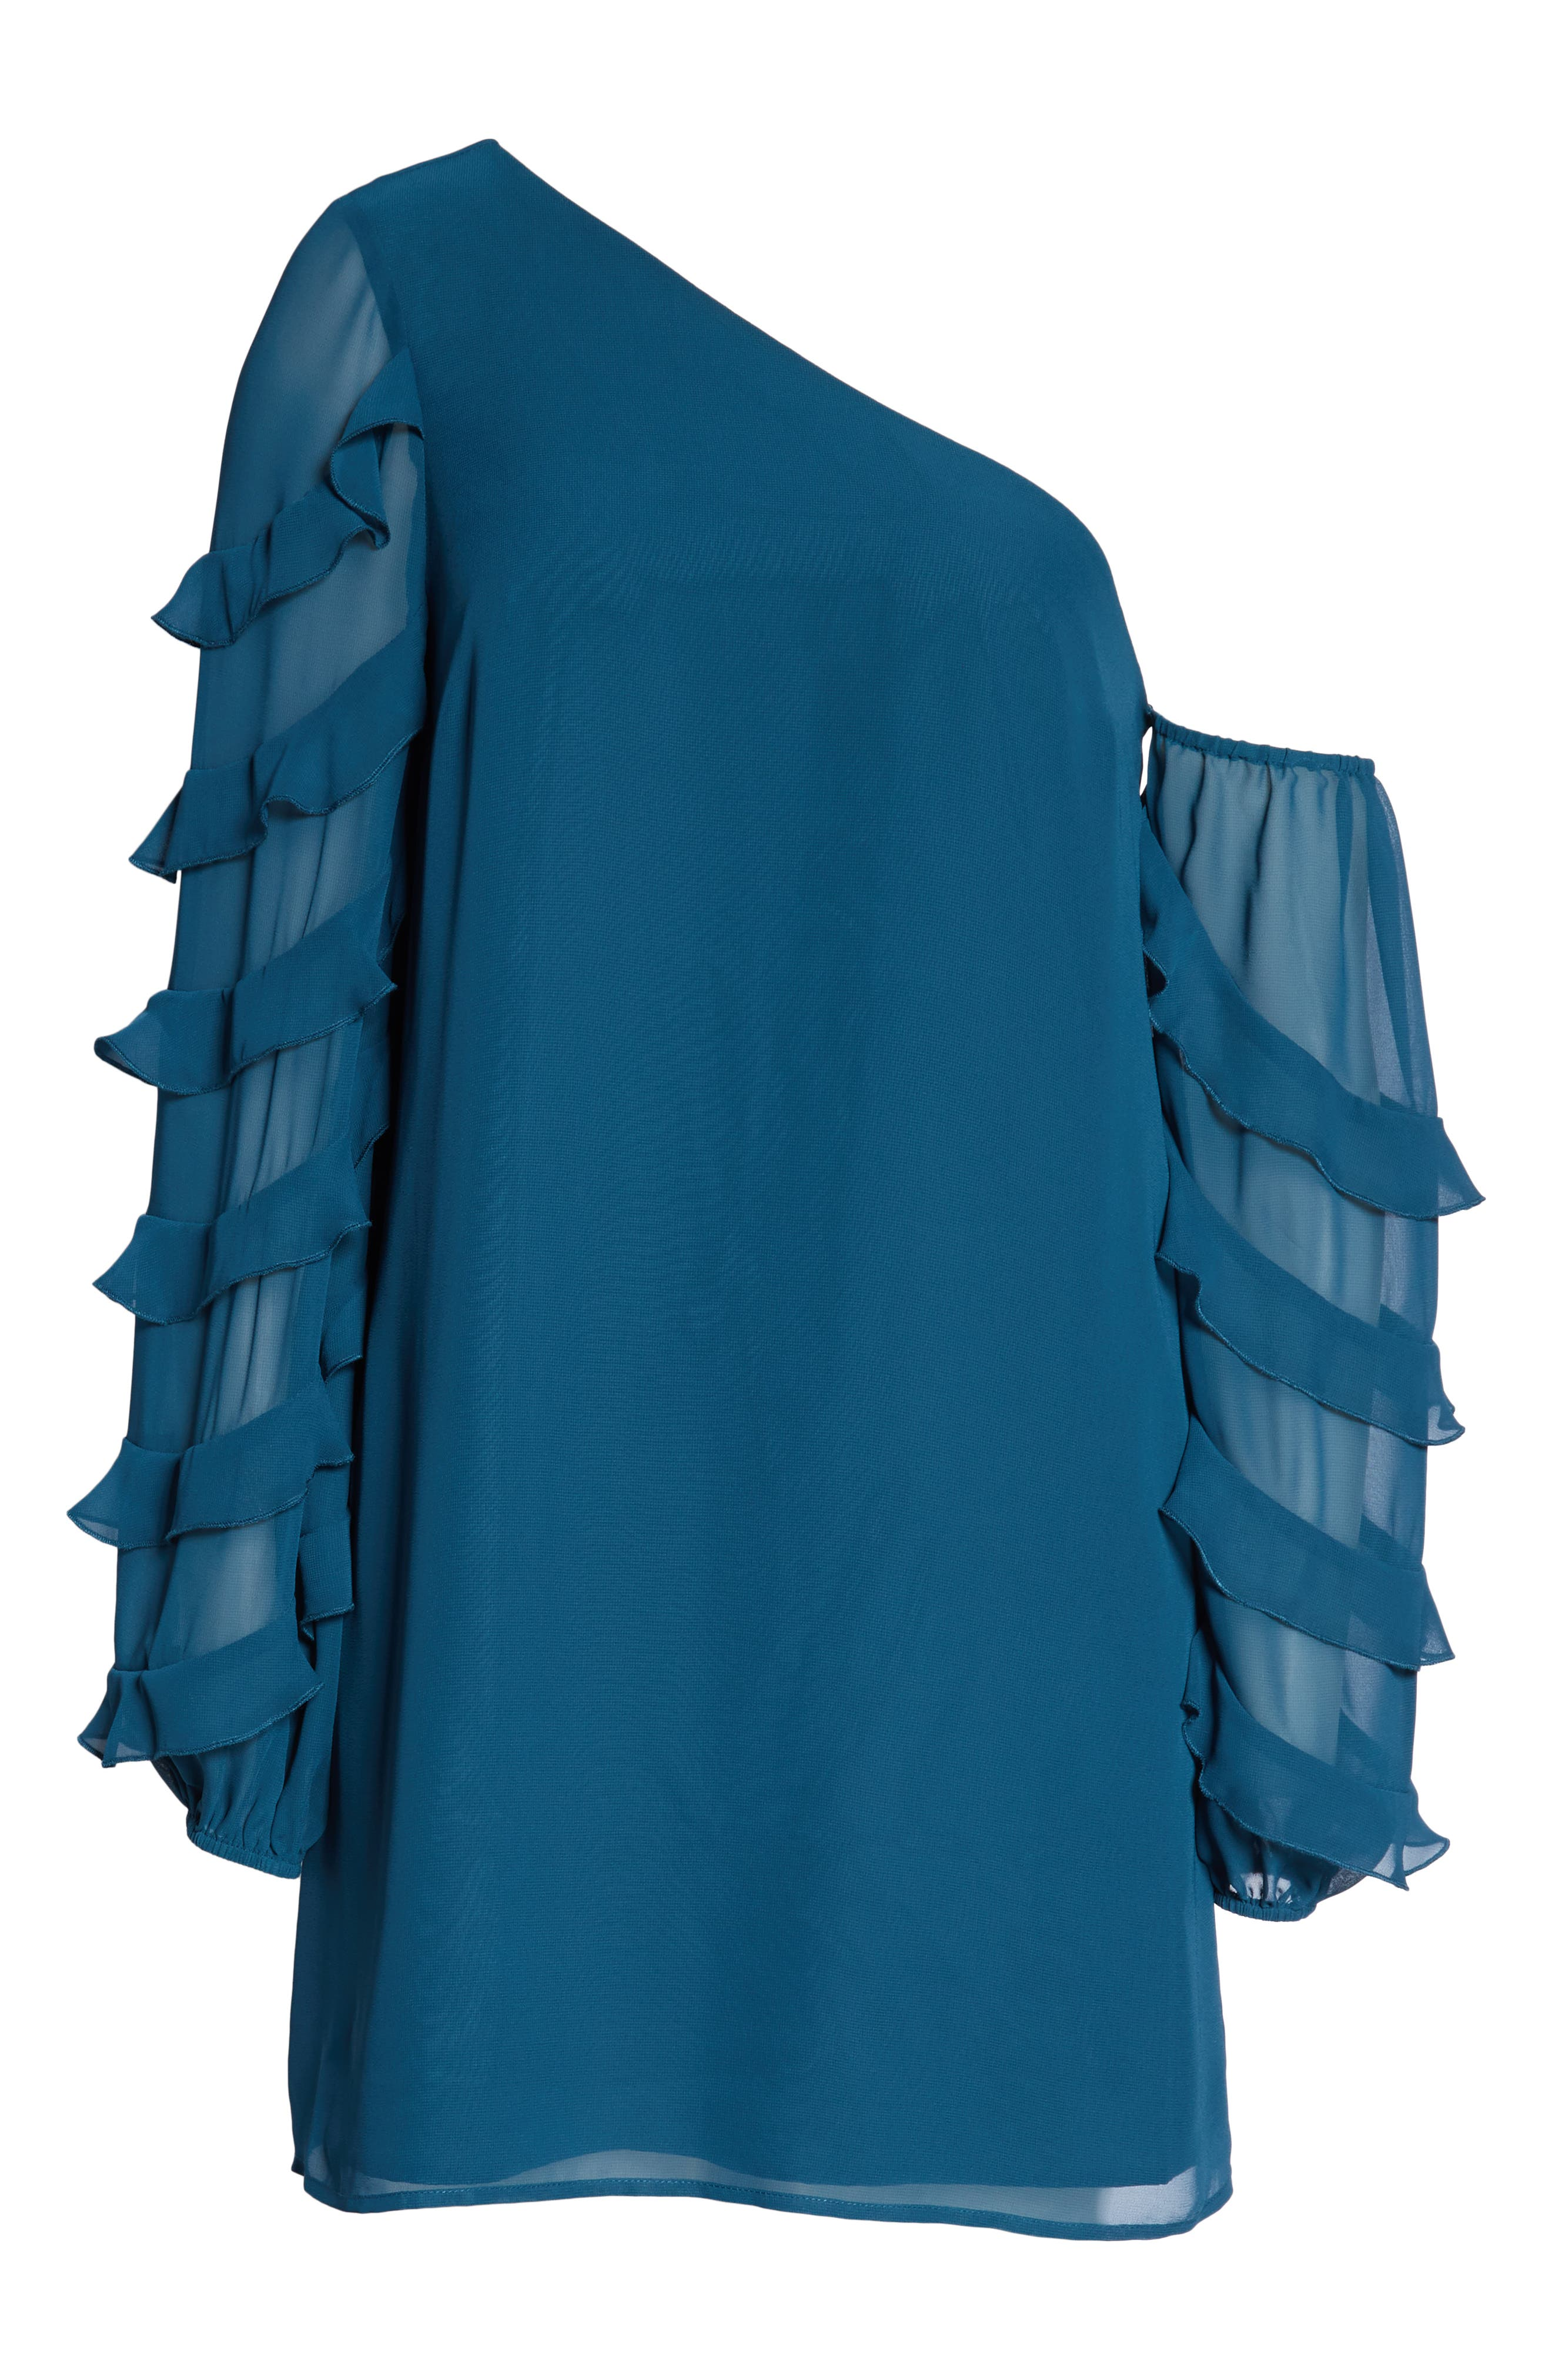 Love the Way I Look Tonight One-Shoulder Minidress,                             Alternate thumbnail 6, color,                             TEAL